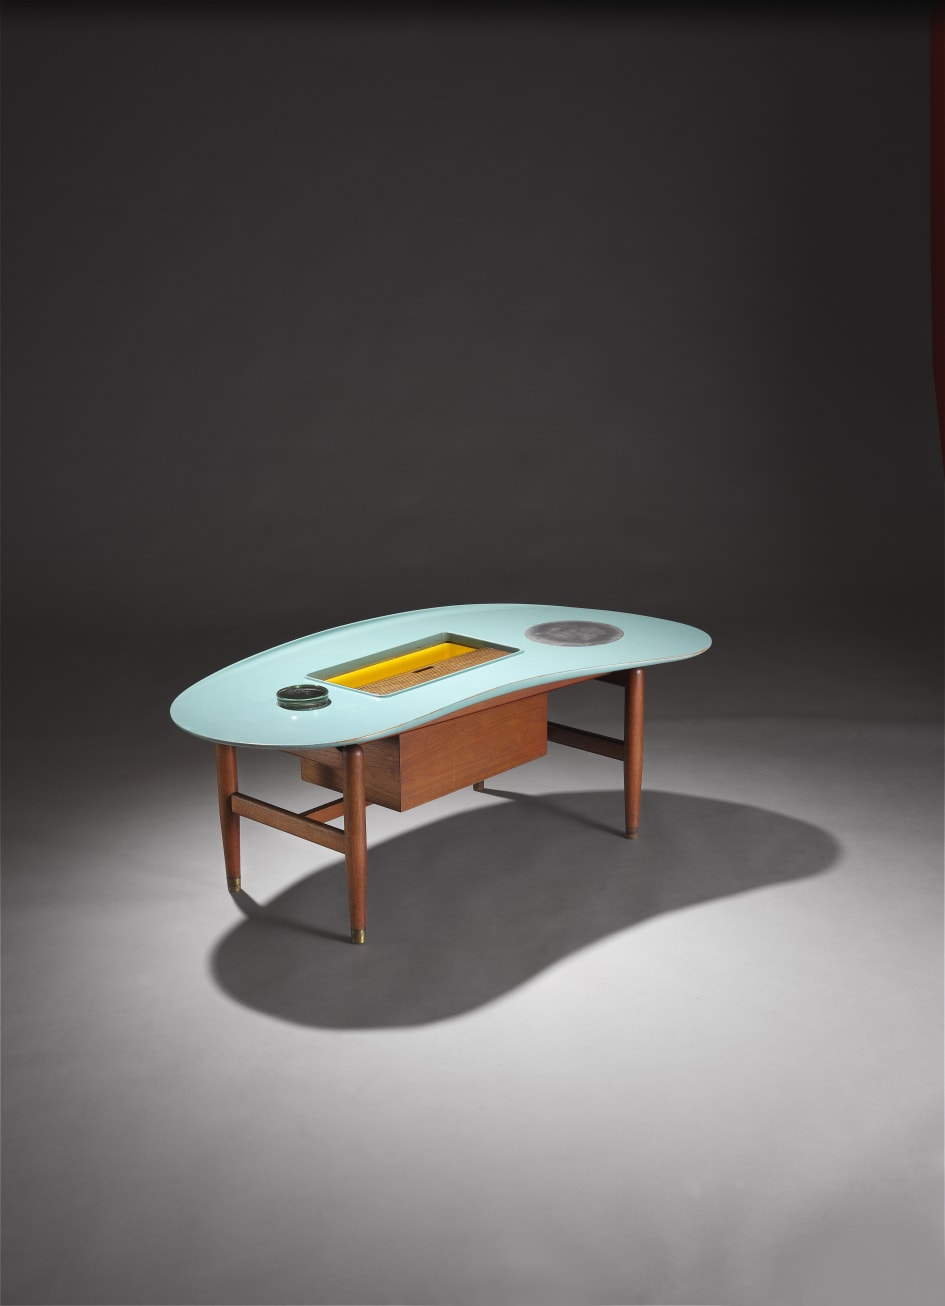 Finn Juhl Unique Coffee Table 1945